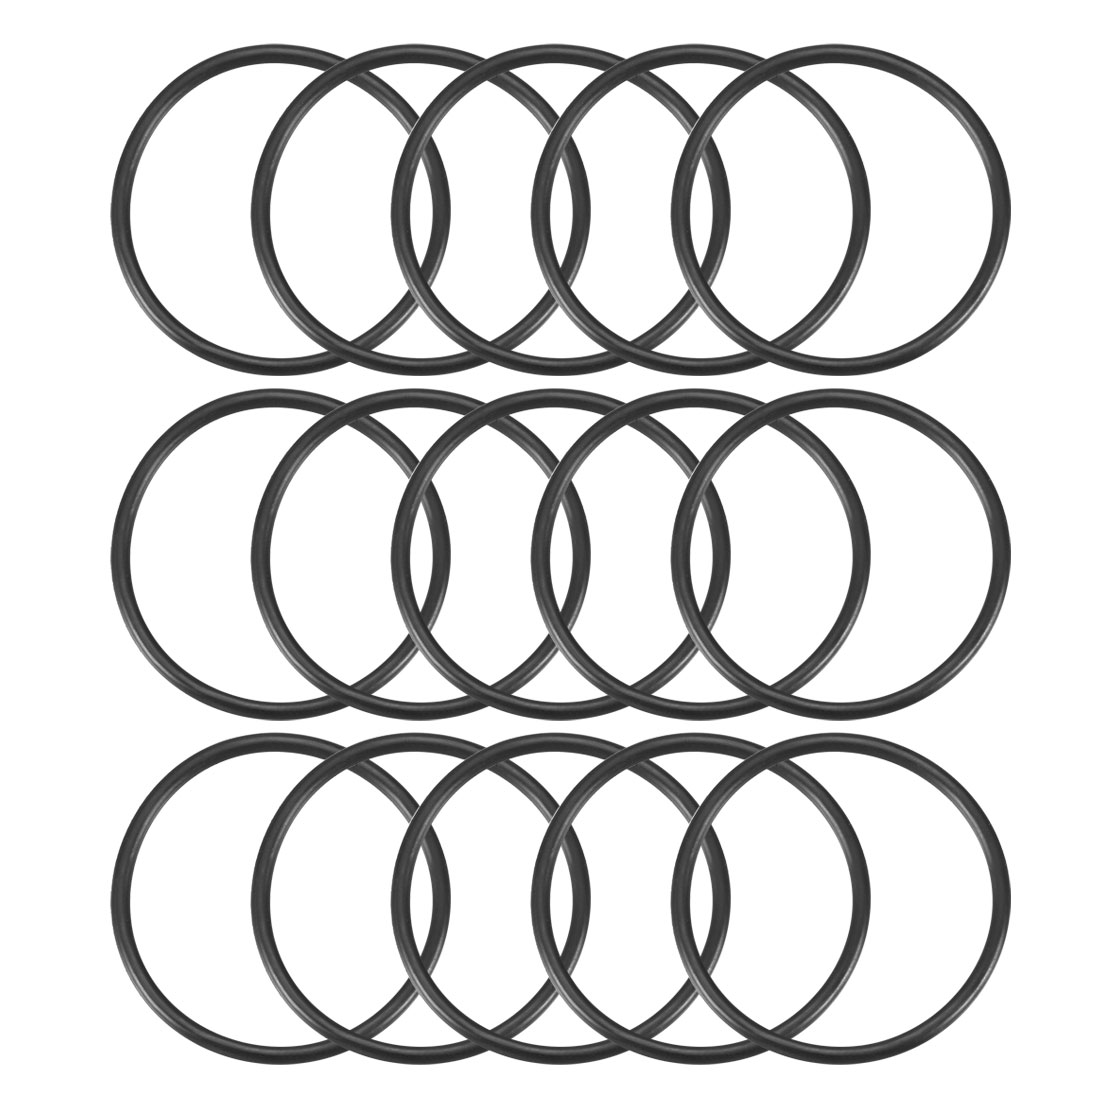 15 Pcs 34mm x 2mm Rubber Oil Resistant Sealing Ring O-shape Spacers